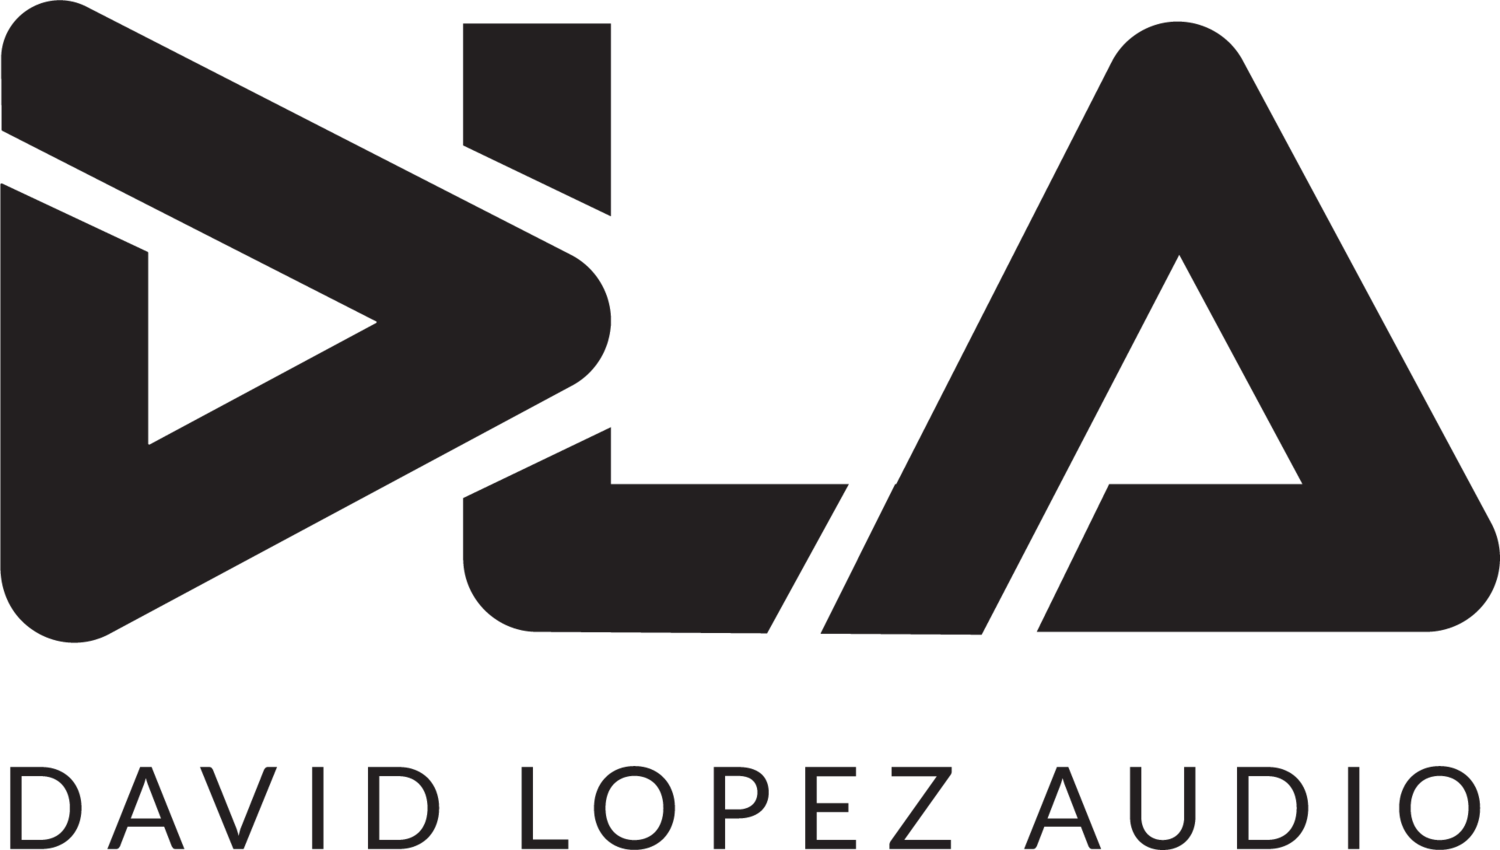 David Lopez Audio